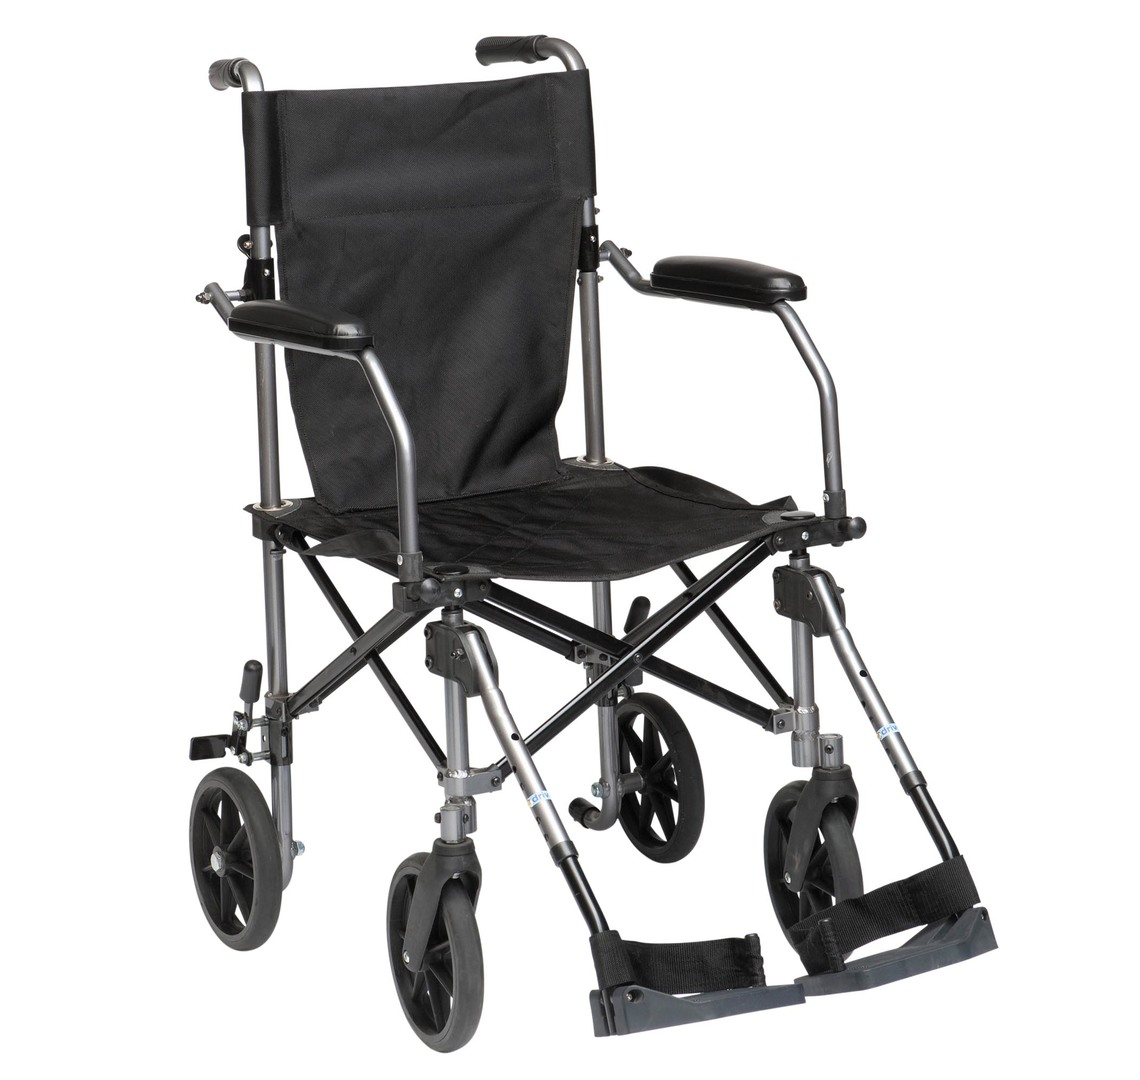 wheelchairs-and-accessories | travel-chair-range